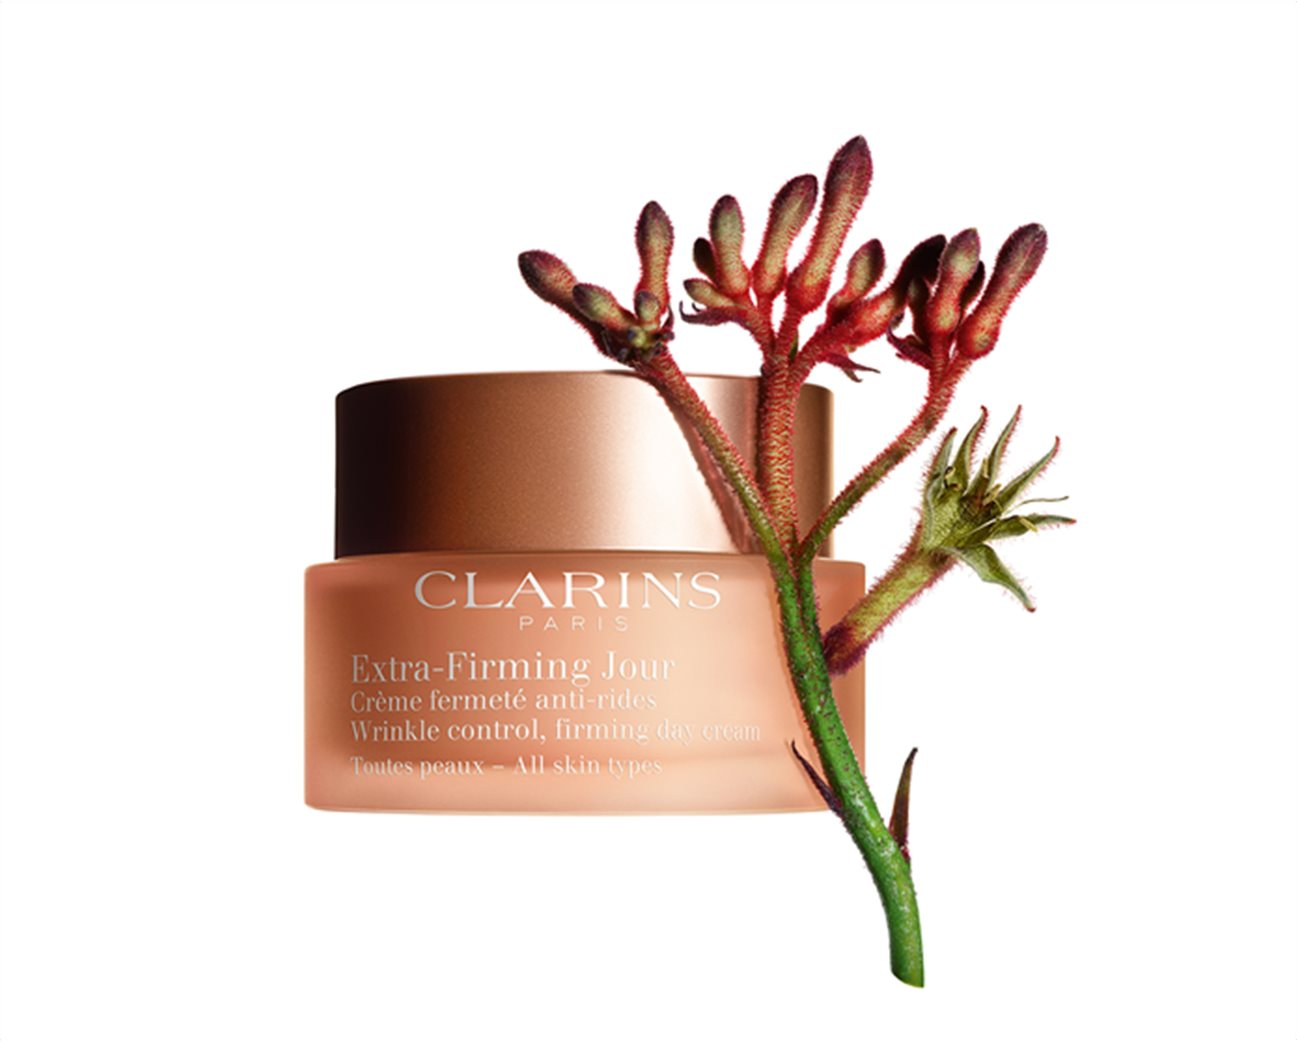 Clarins Extra Firming Jour Wrinkle Control Firming Day Cream All Skin Types 50 ml 2